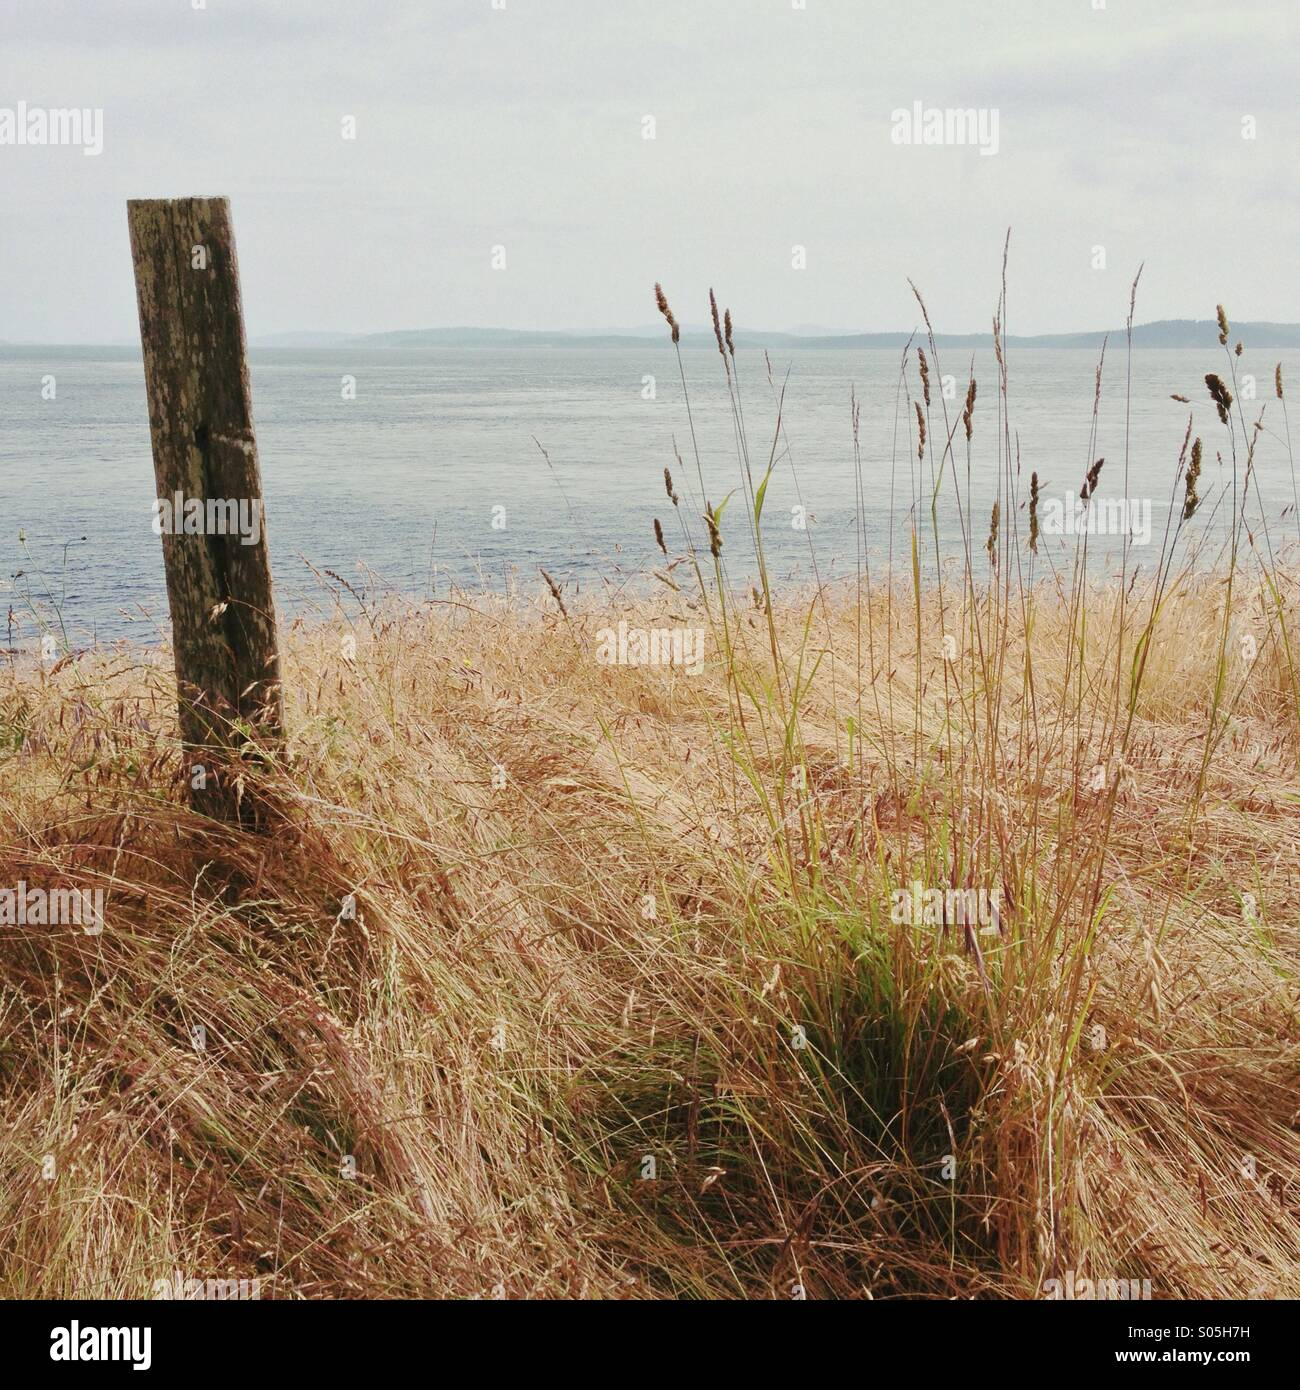 Minimalist landscape with grasses and post overlooking ocean water and islands - Stock Image